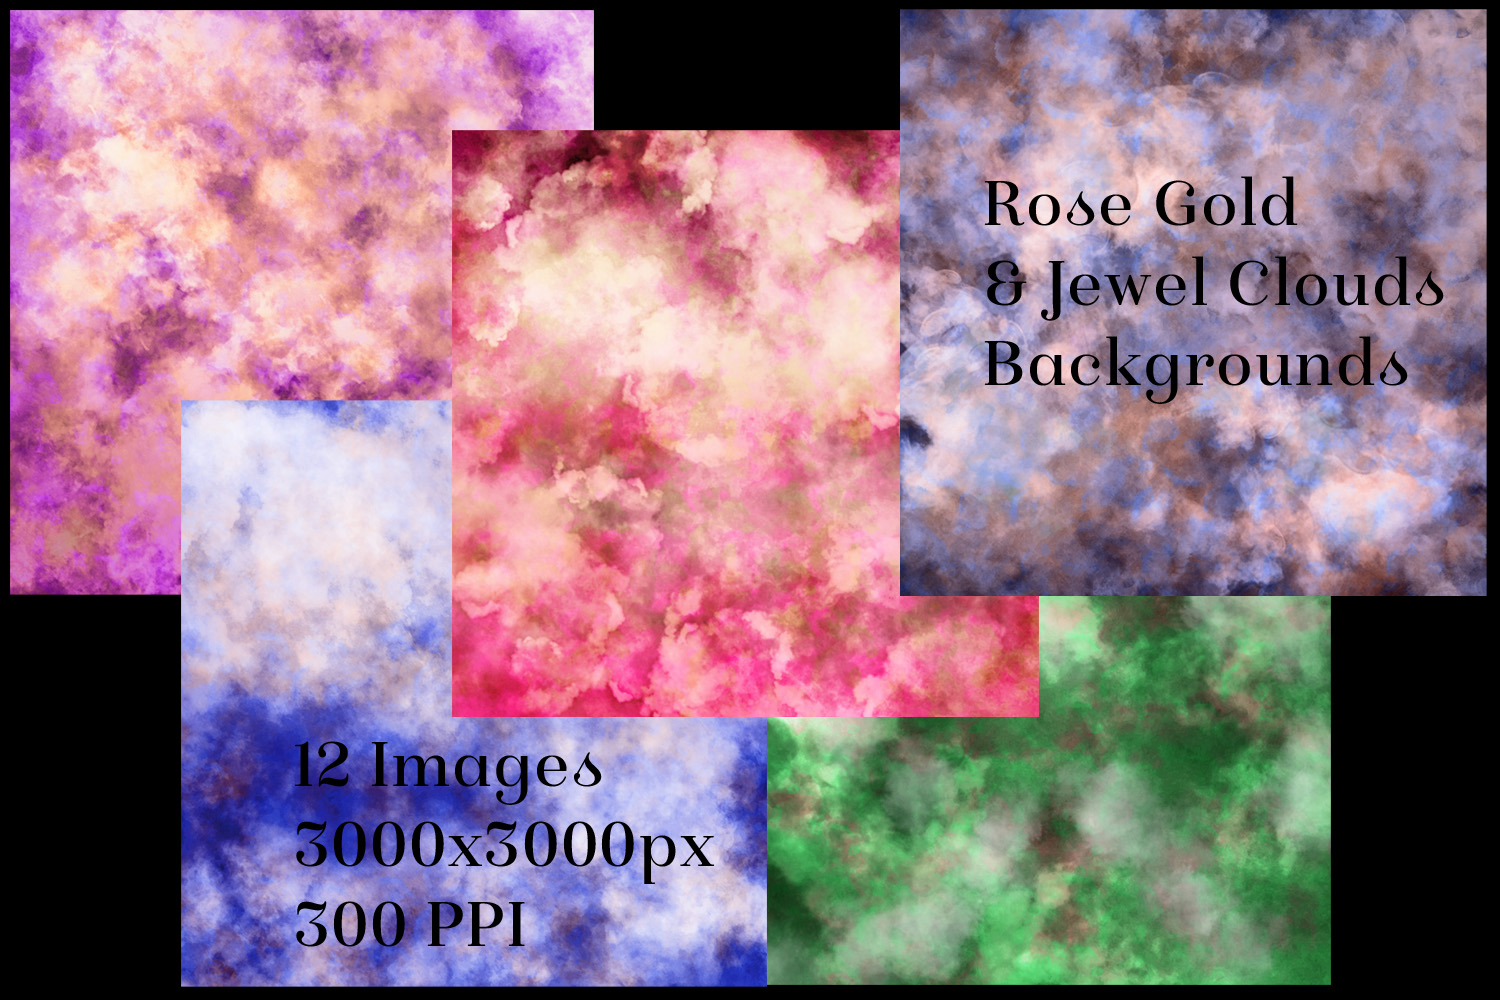 Rose Gold and Jewel Colour Clouds Backgrounds - 12 Image Set example image 2